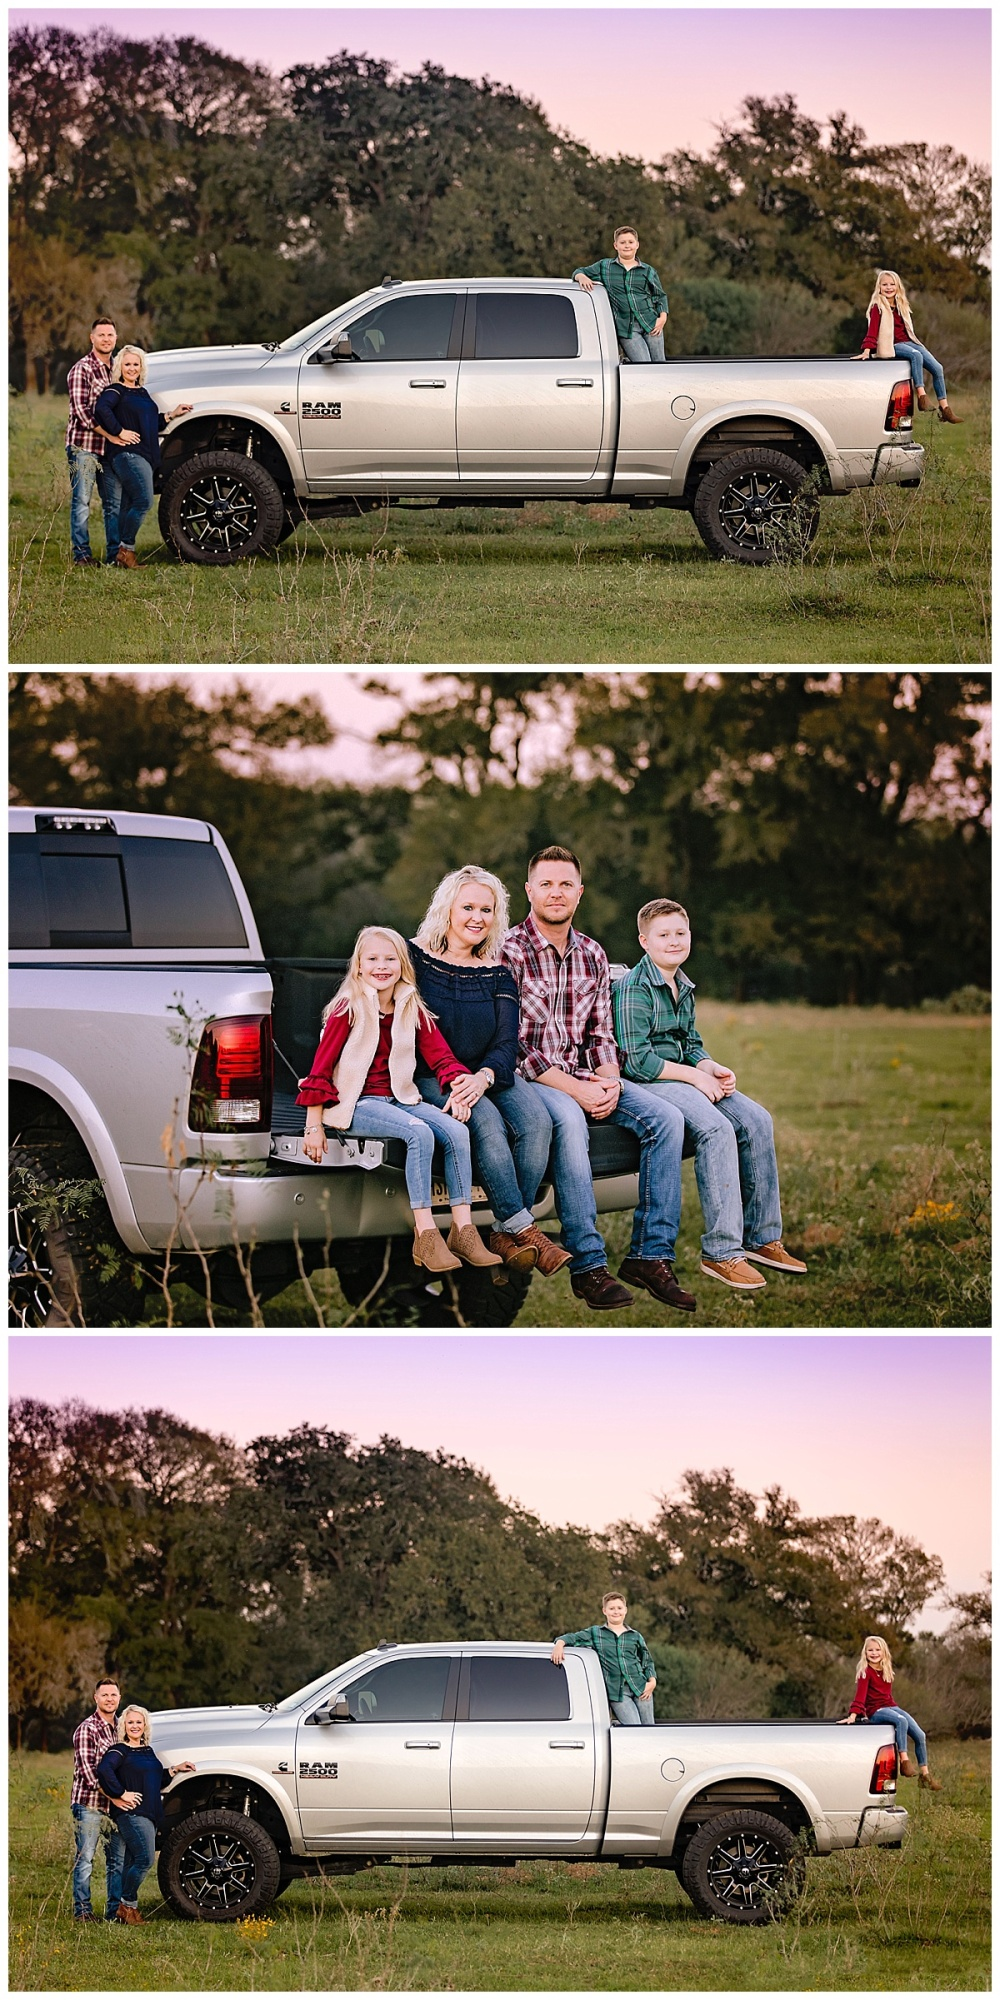 Family-Photographer-LaVernia-Texas-Fall-Sunset-Carly-Barton-Photography_0007.jpg